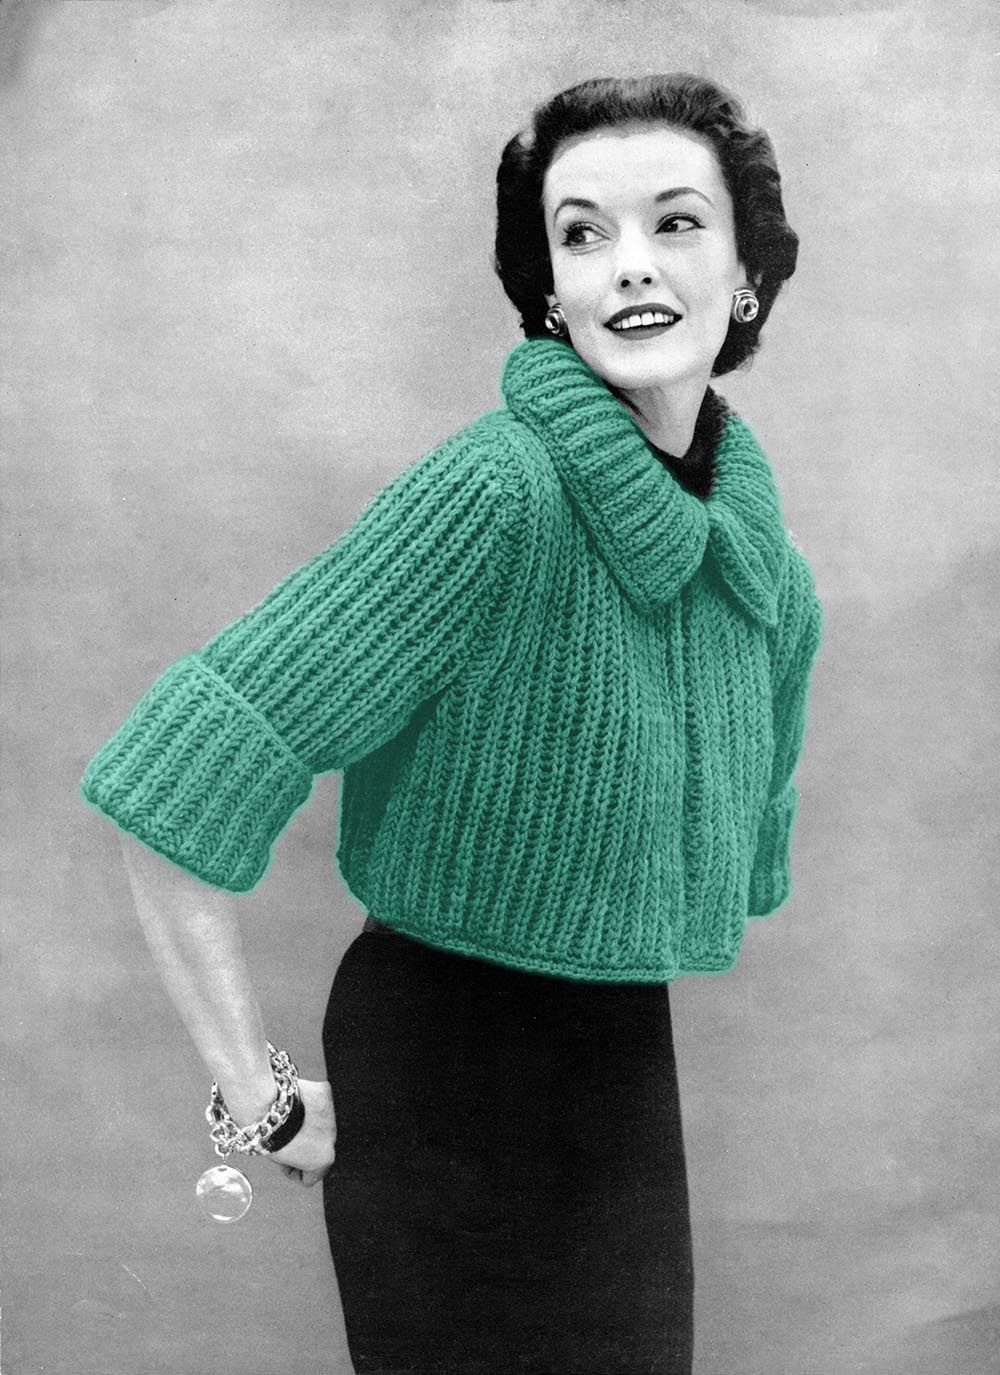 Finnfemme fab 50s vintage bolero sweater knitting pattern my the vintage pattern files free knitting pattern chunky knit bolero sweater bankloansurffo Image collections